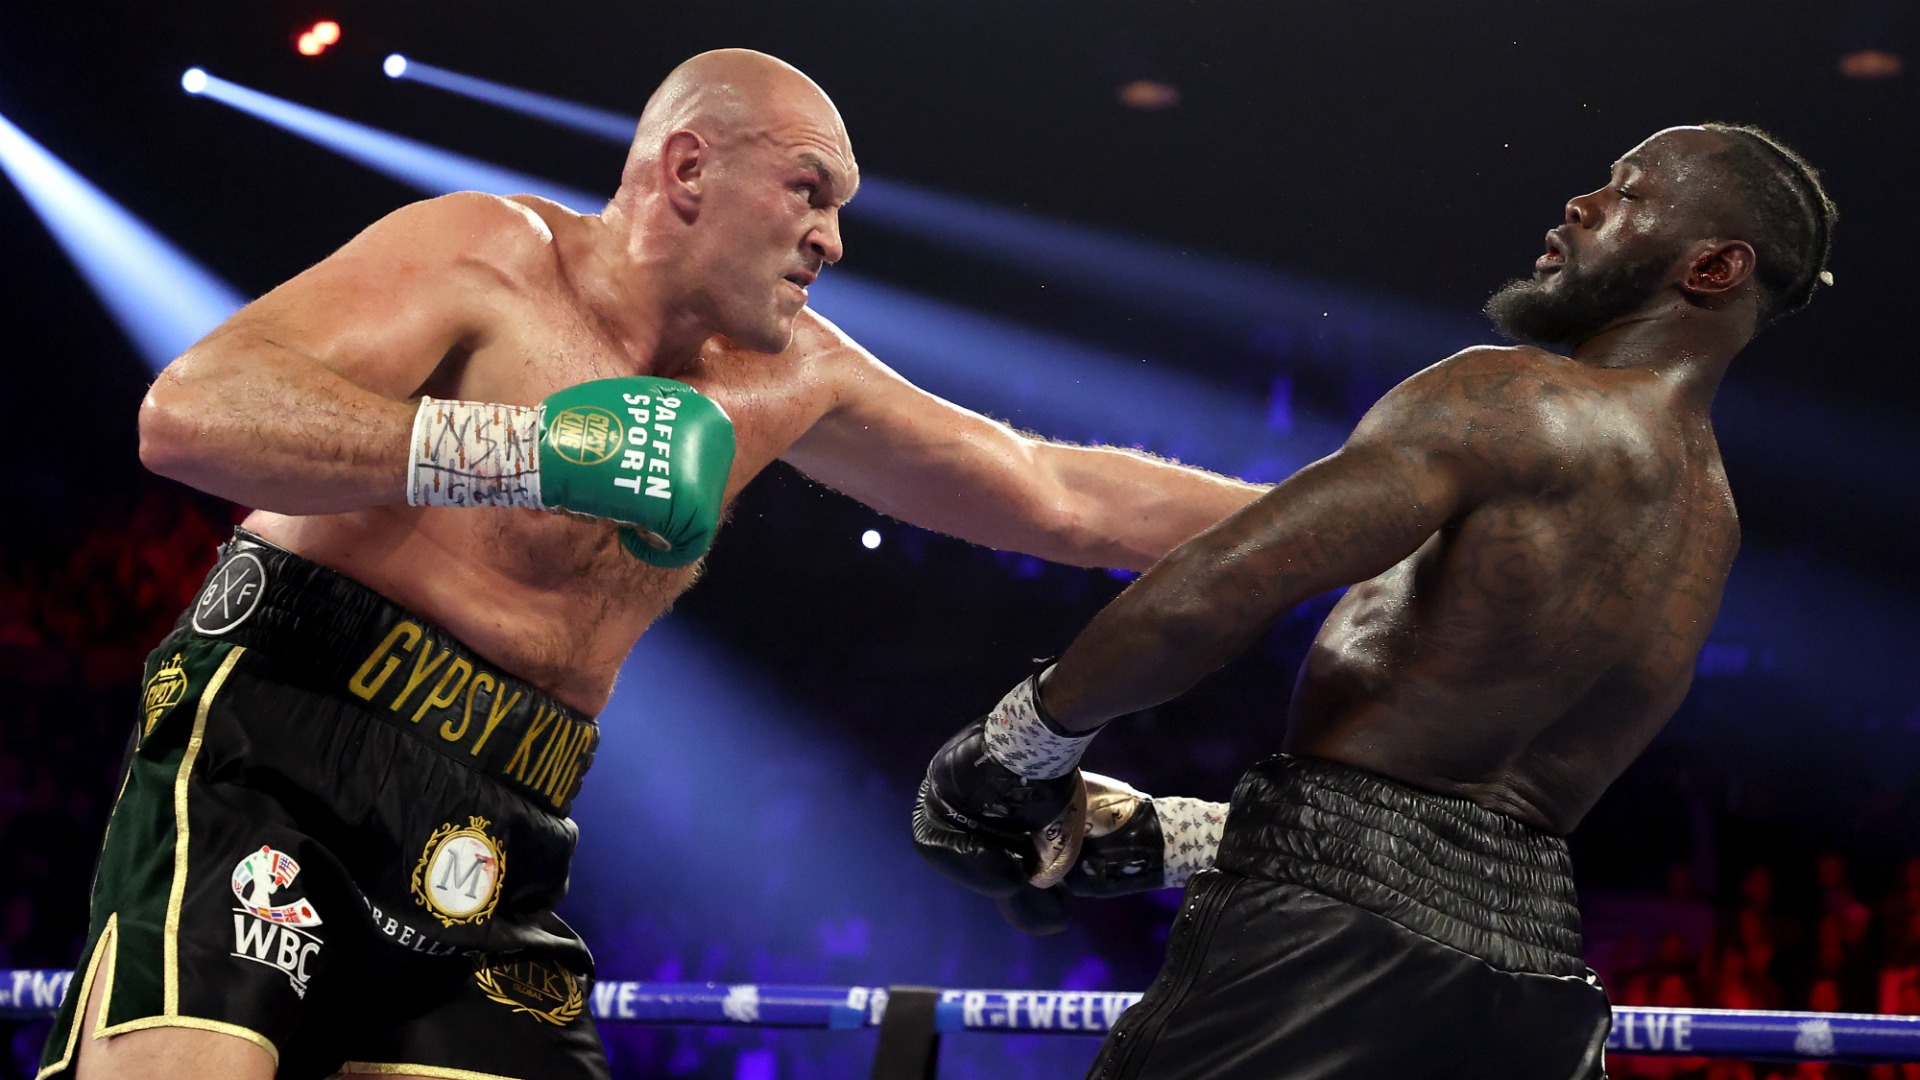 'He's taking third fight for the money' - Fury thinks cash is Wilder's motivation